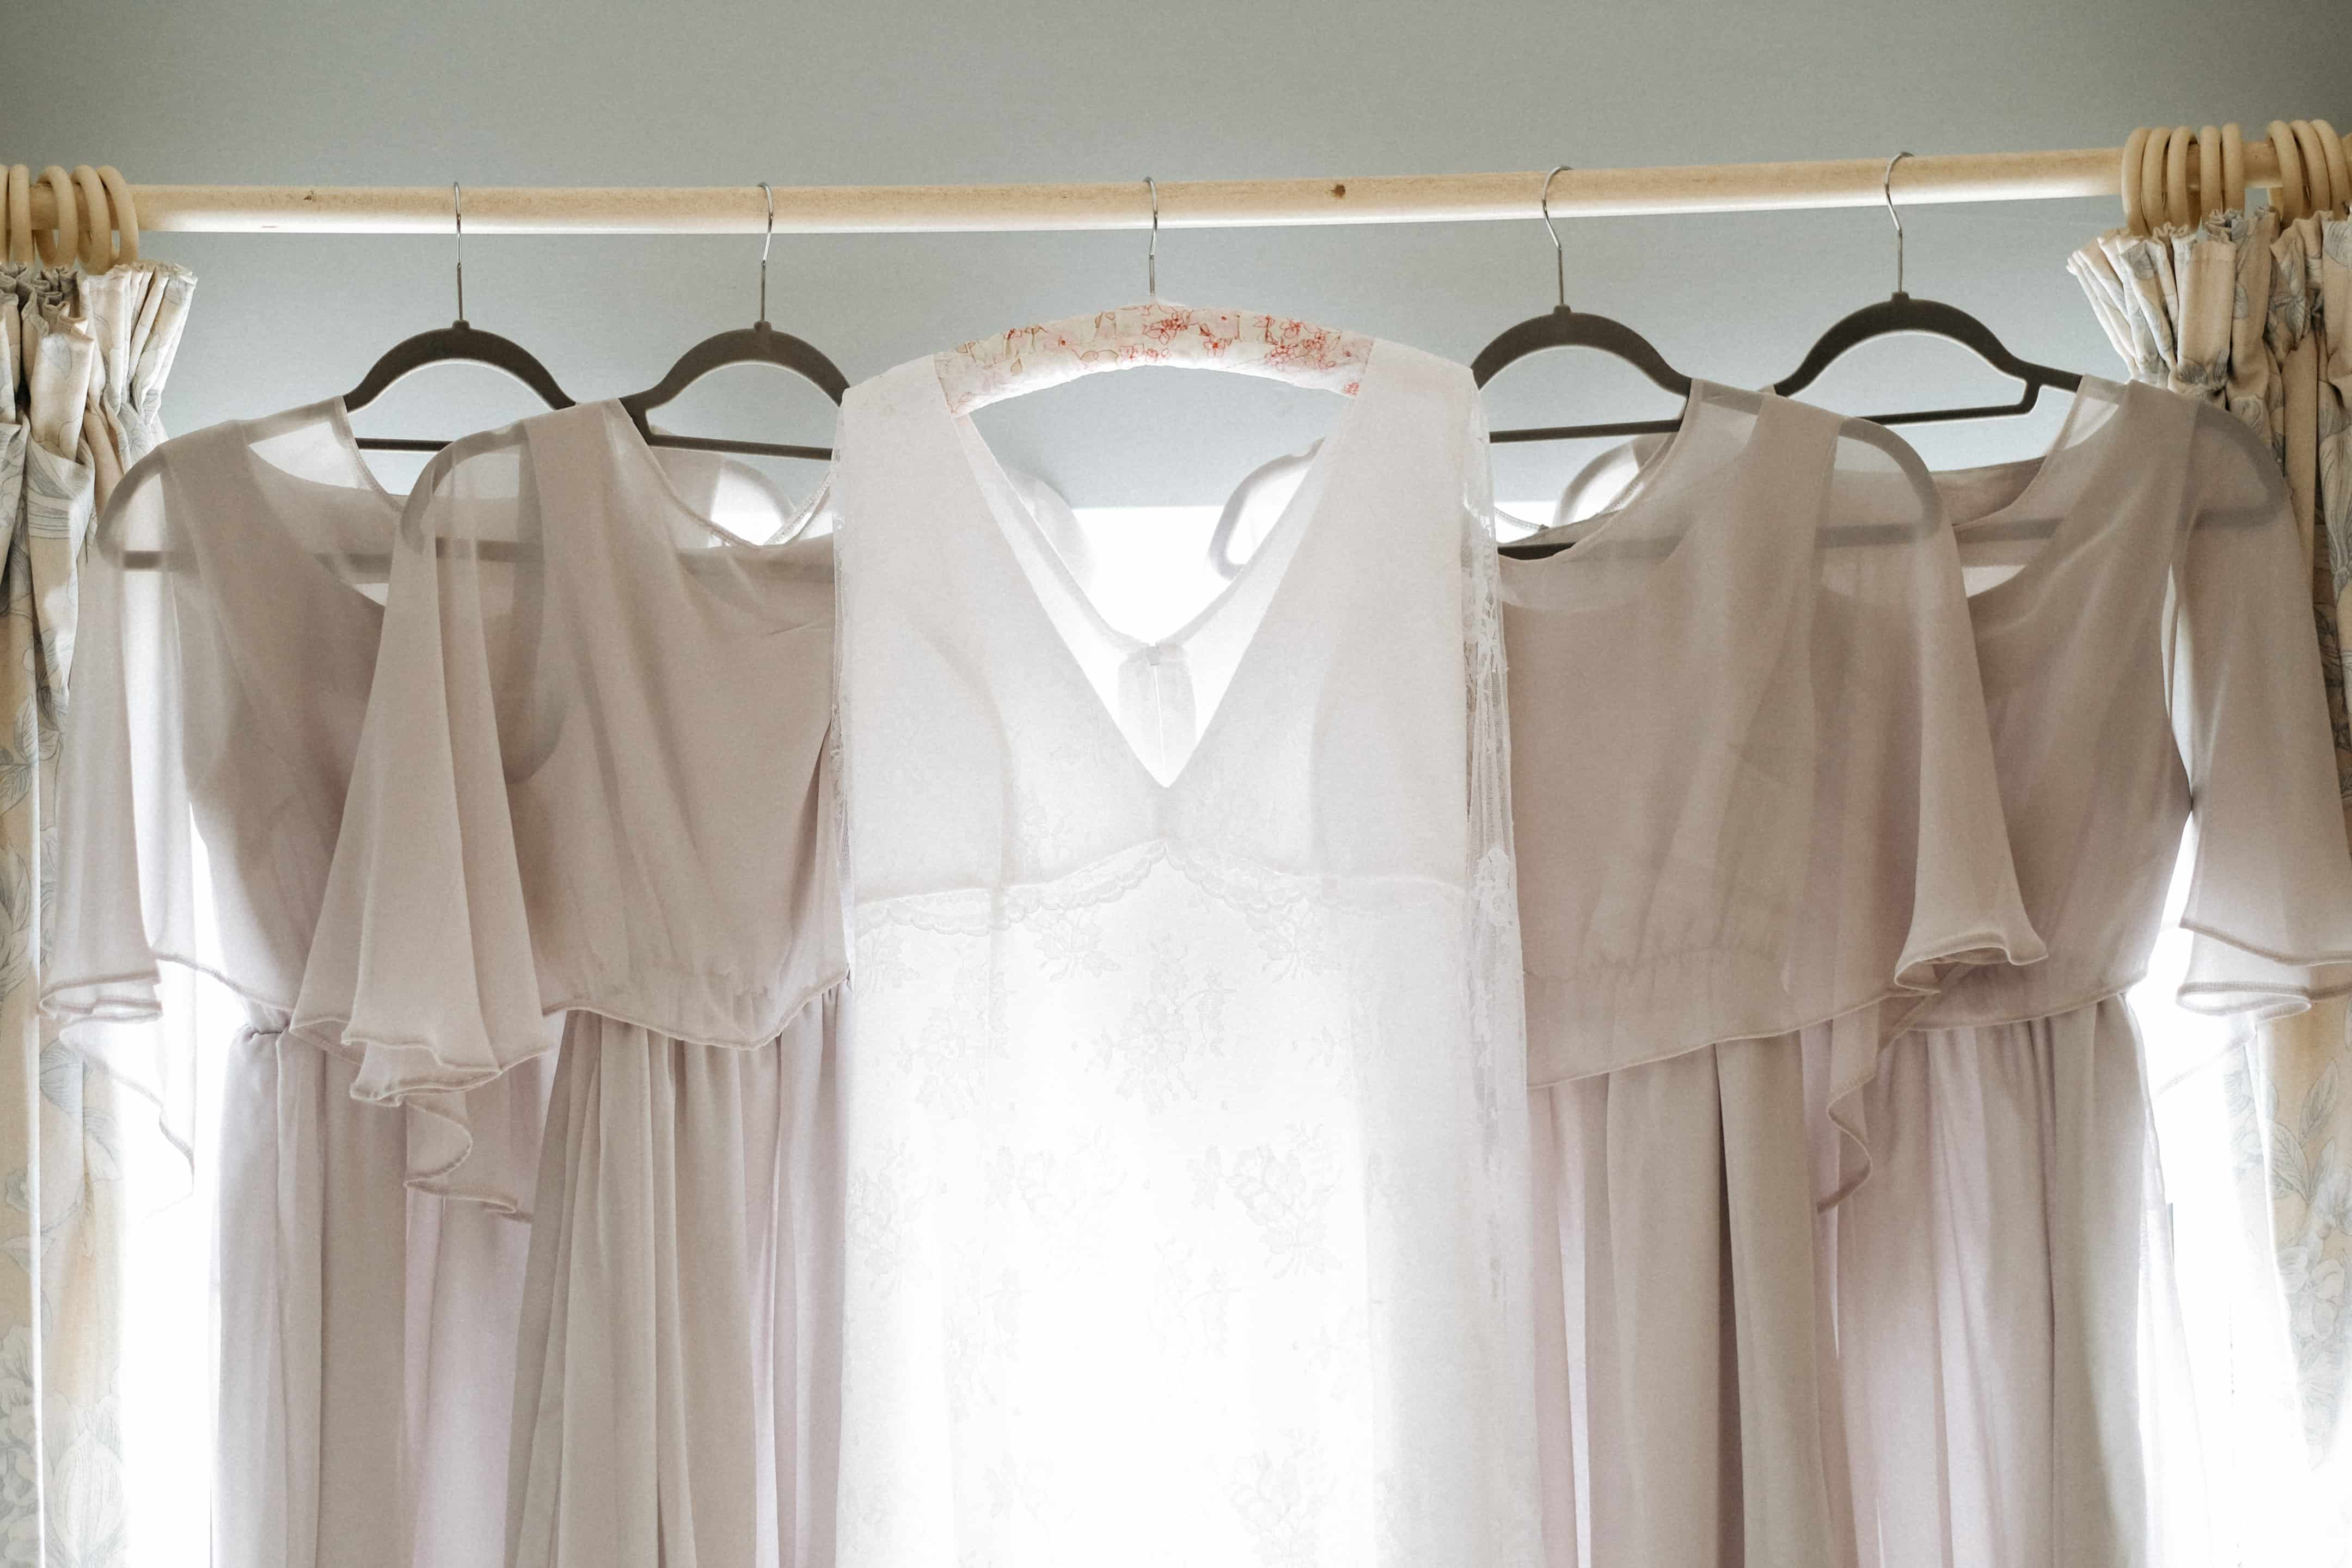 Homemade Bride and bridesmaids dresses